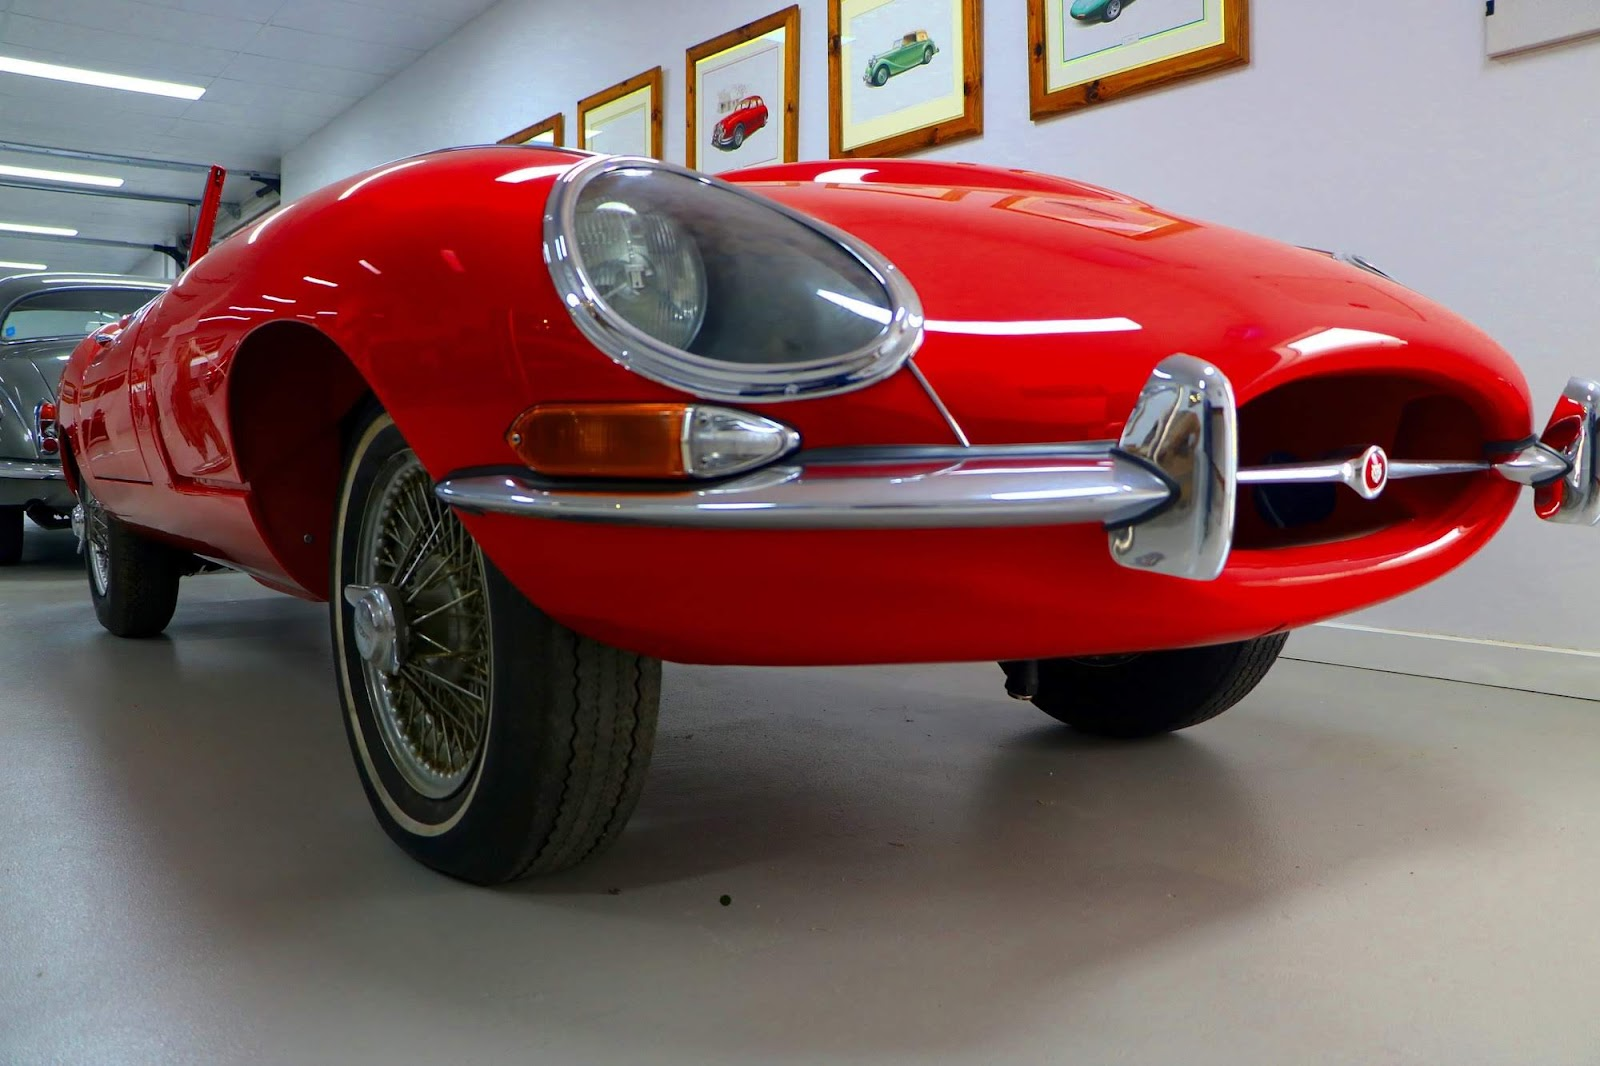 Carl_Lindner_Collection - Jaguar E-Type Series I - Under Restoration 05.jpg